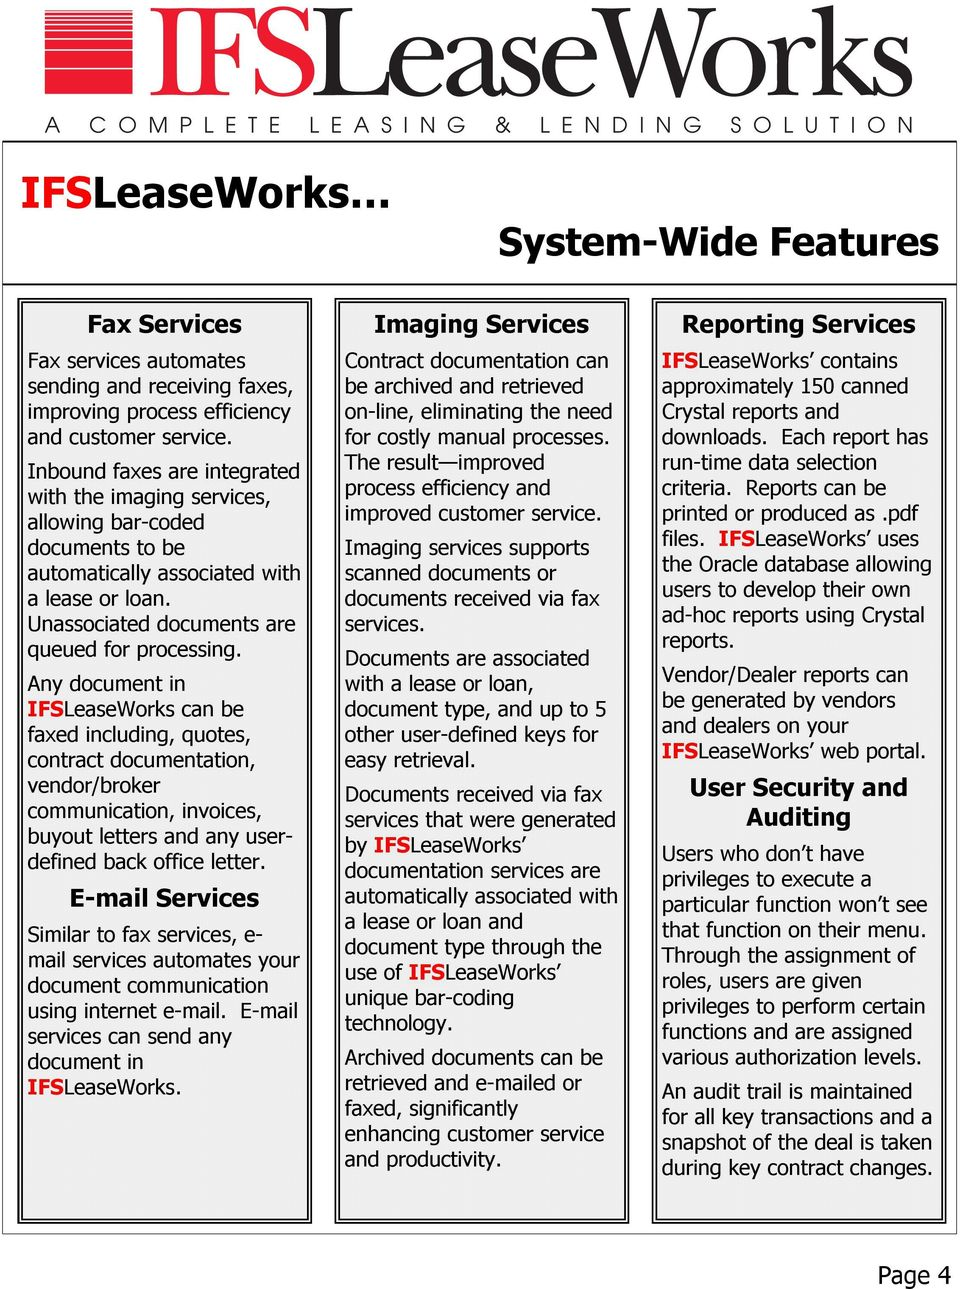 Any document in IFSLeaseWorks can be faxed including, quotes, contract documentation, vendor/broker communication, invoices, buyout letters and any userdefined back office letter.